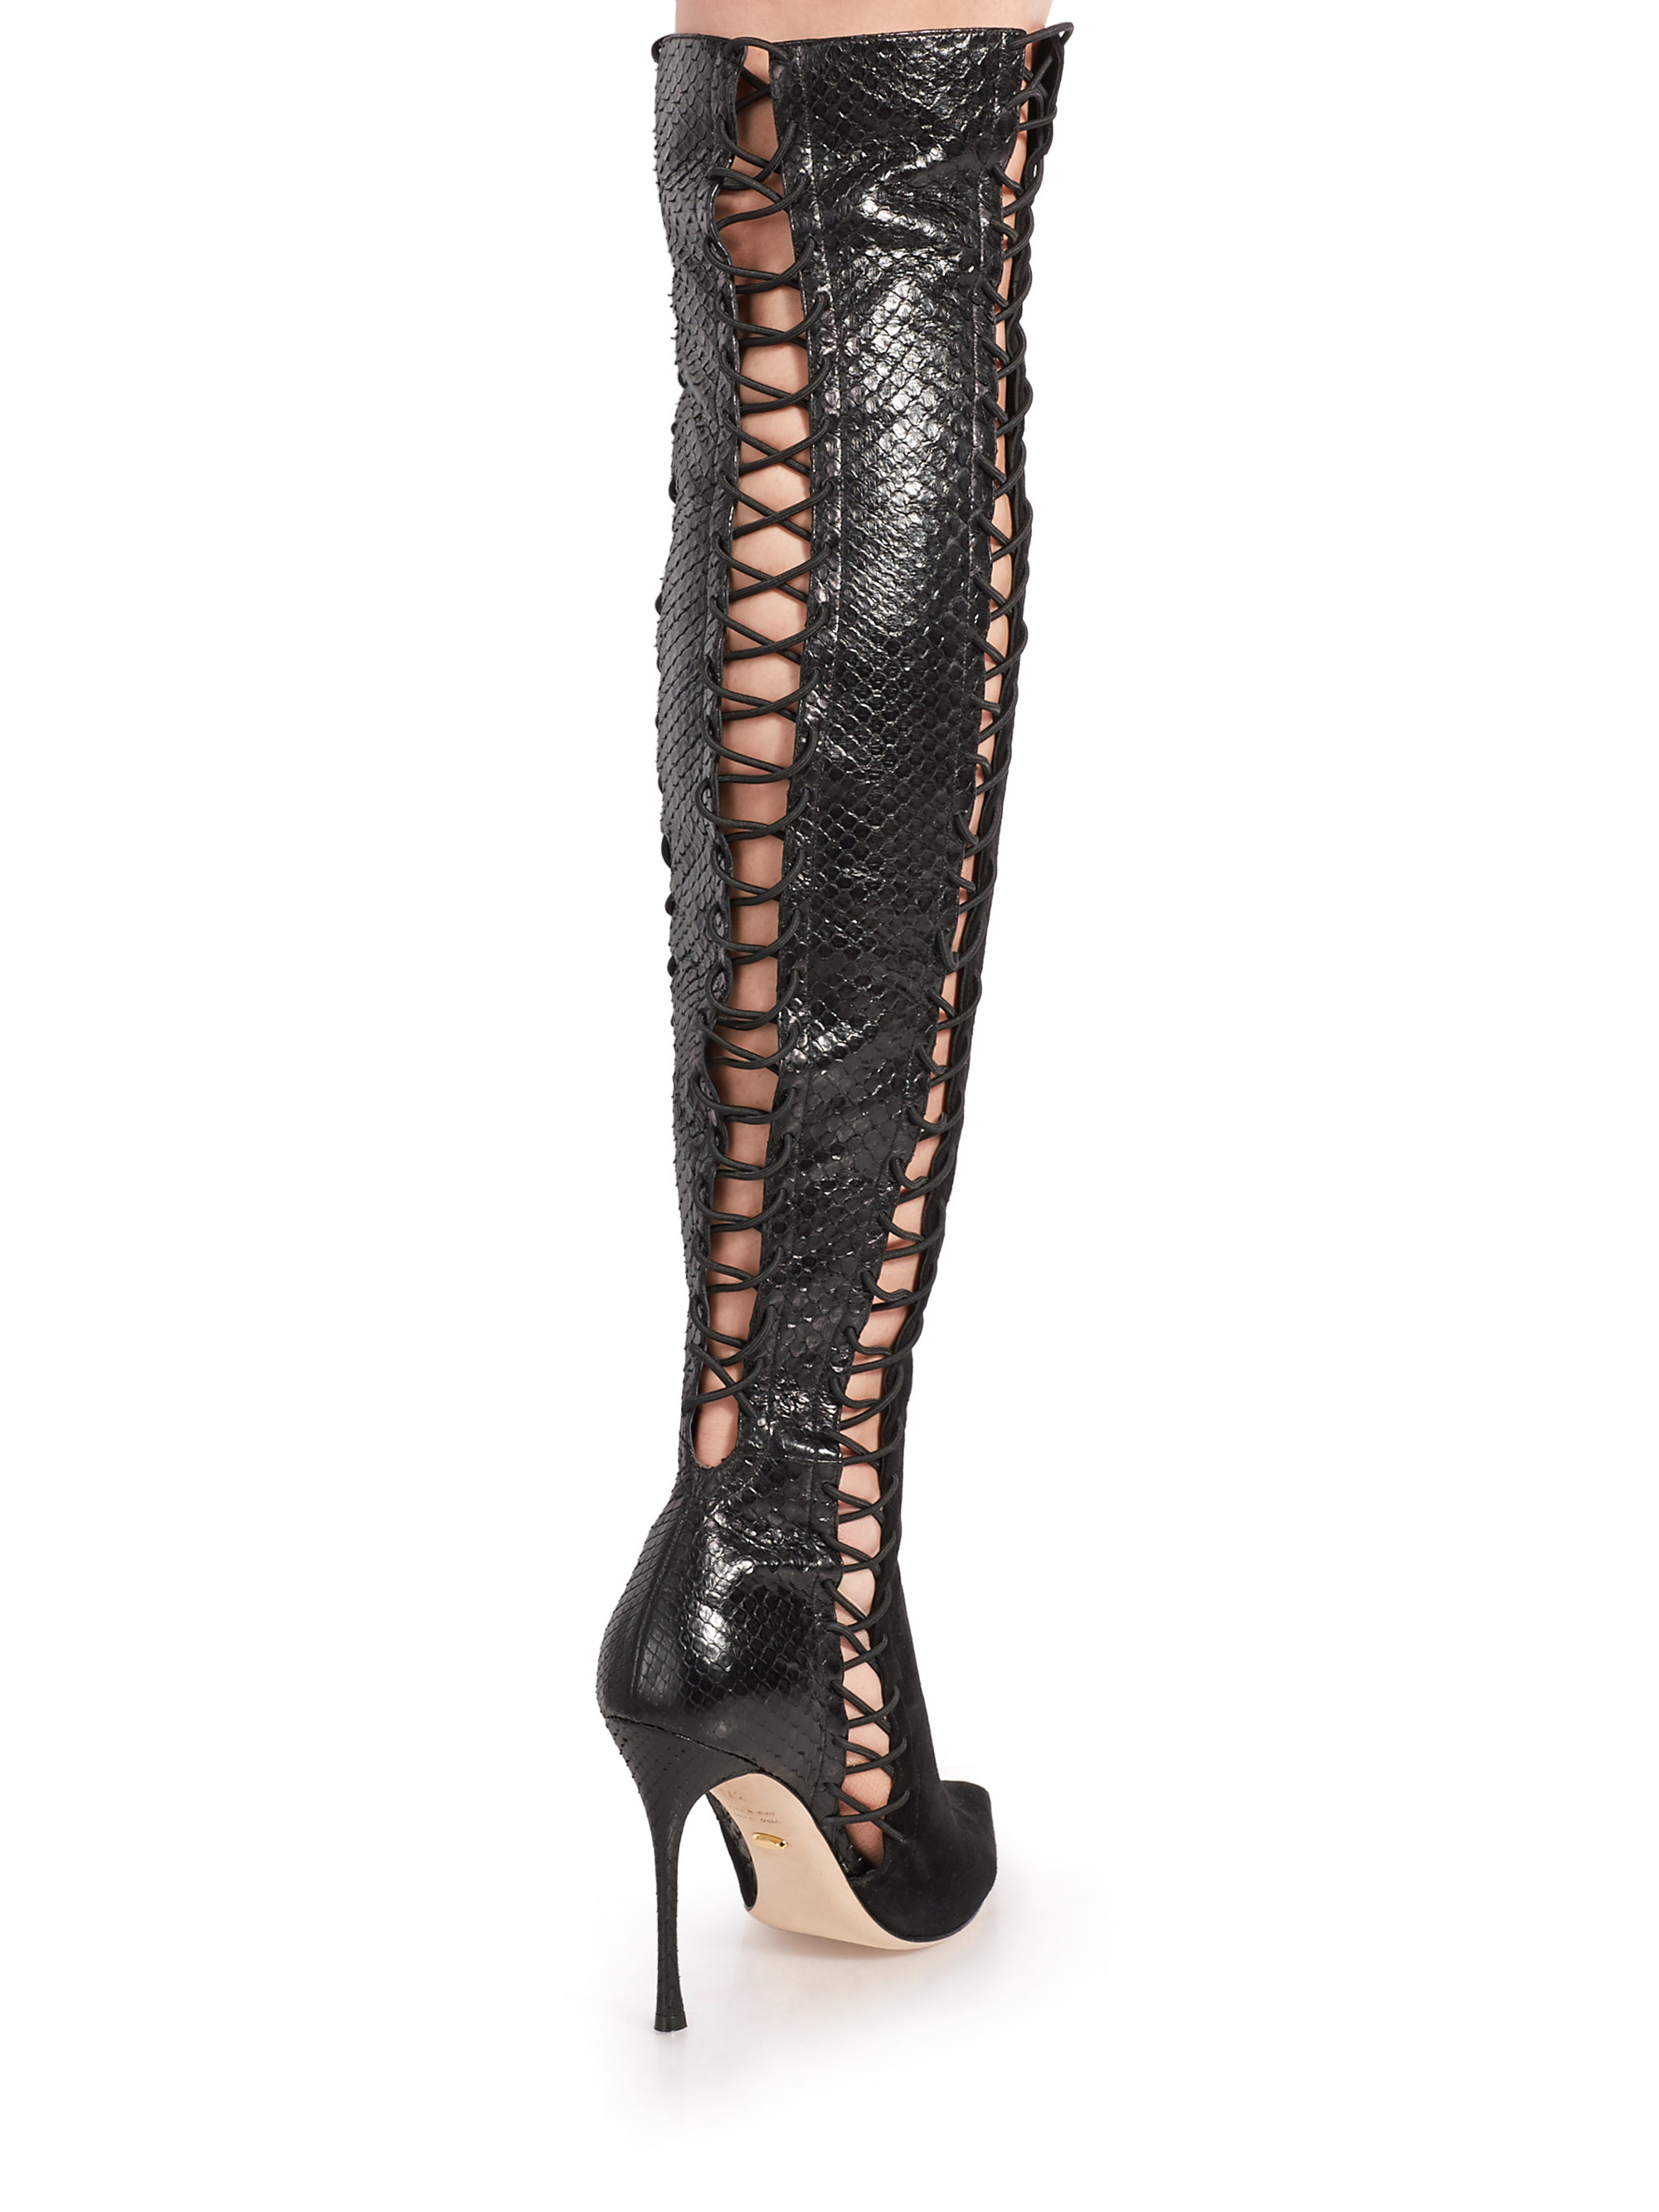 Sergio Rossi Snakeskin & Suede Over-The-Knee Boots extremely for sale EaZ2Cspk